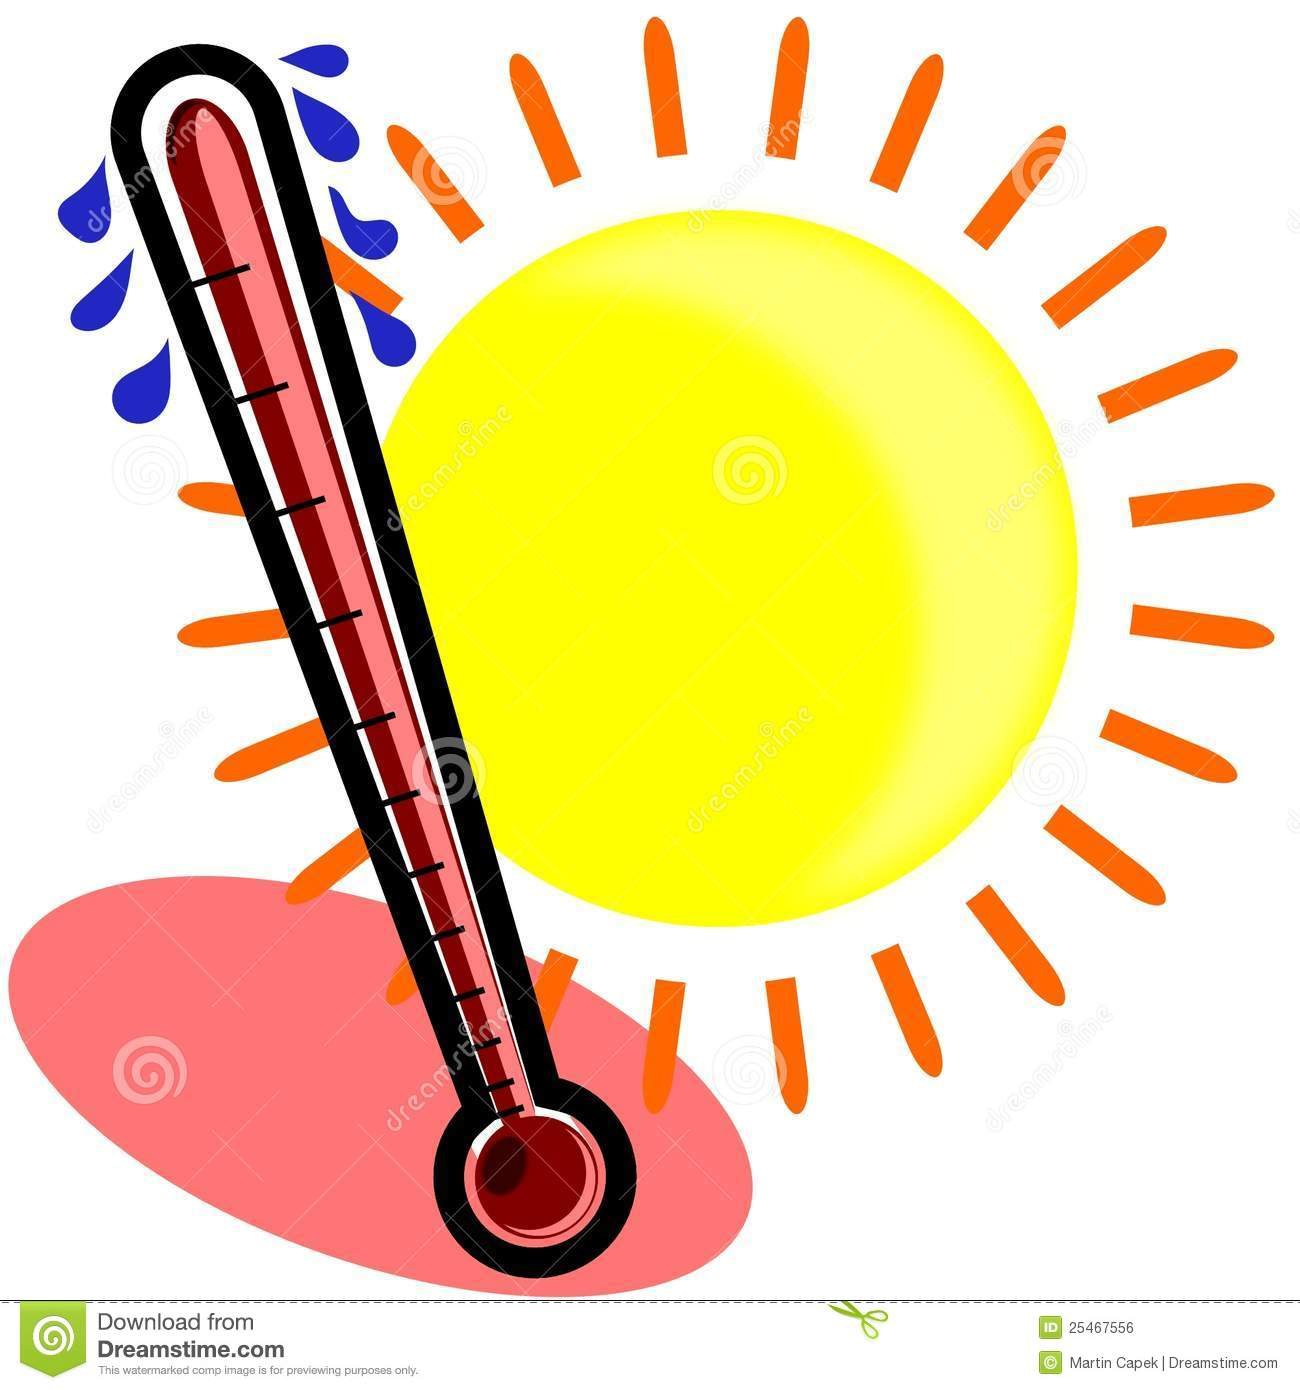 Hot Temperature Clipart - .-Hot temperature clipart - .-2